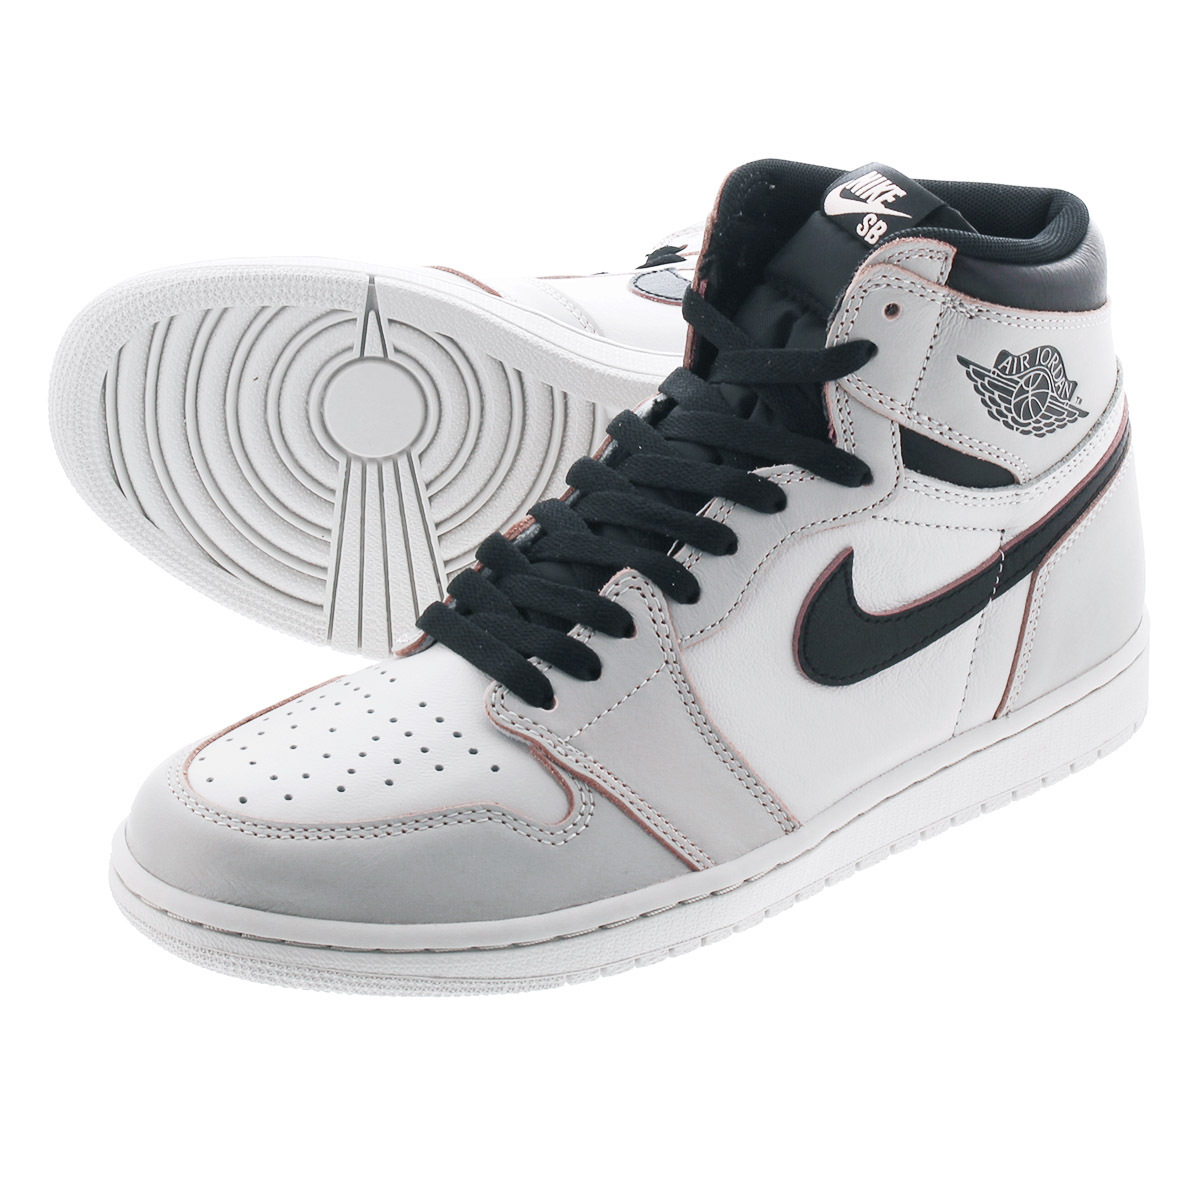 b95f1d8a NIKE SB AIR JORDAN 1 RETRO HIGH OG DEFIANT Nike SB Air Jordan 1 nostalgic  high OG ディファイアント LIGHT BONE/CRIMSON TINT/HYPER PINK cd6578-006